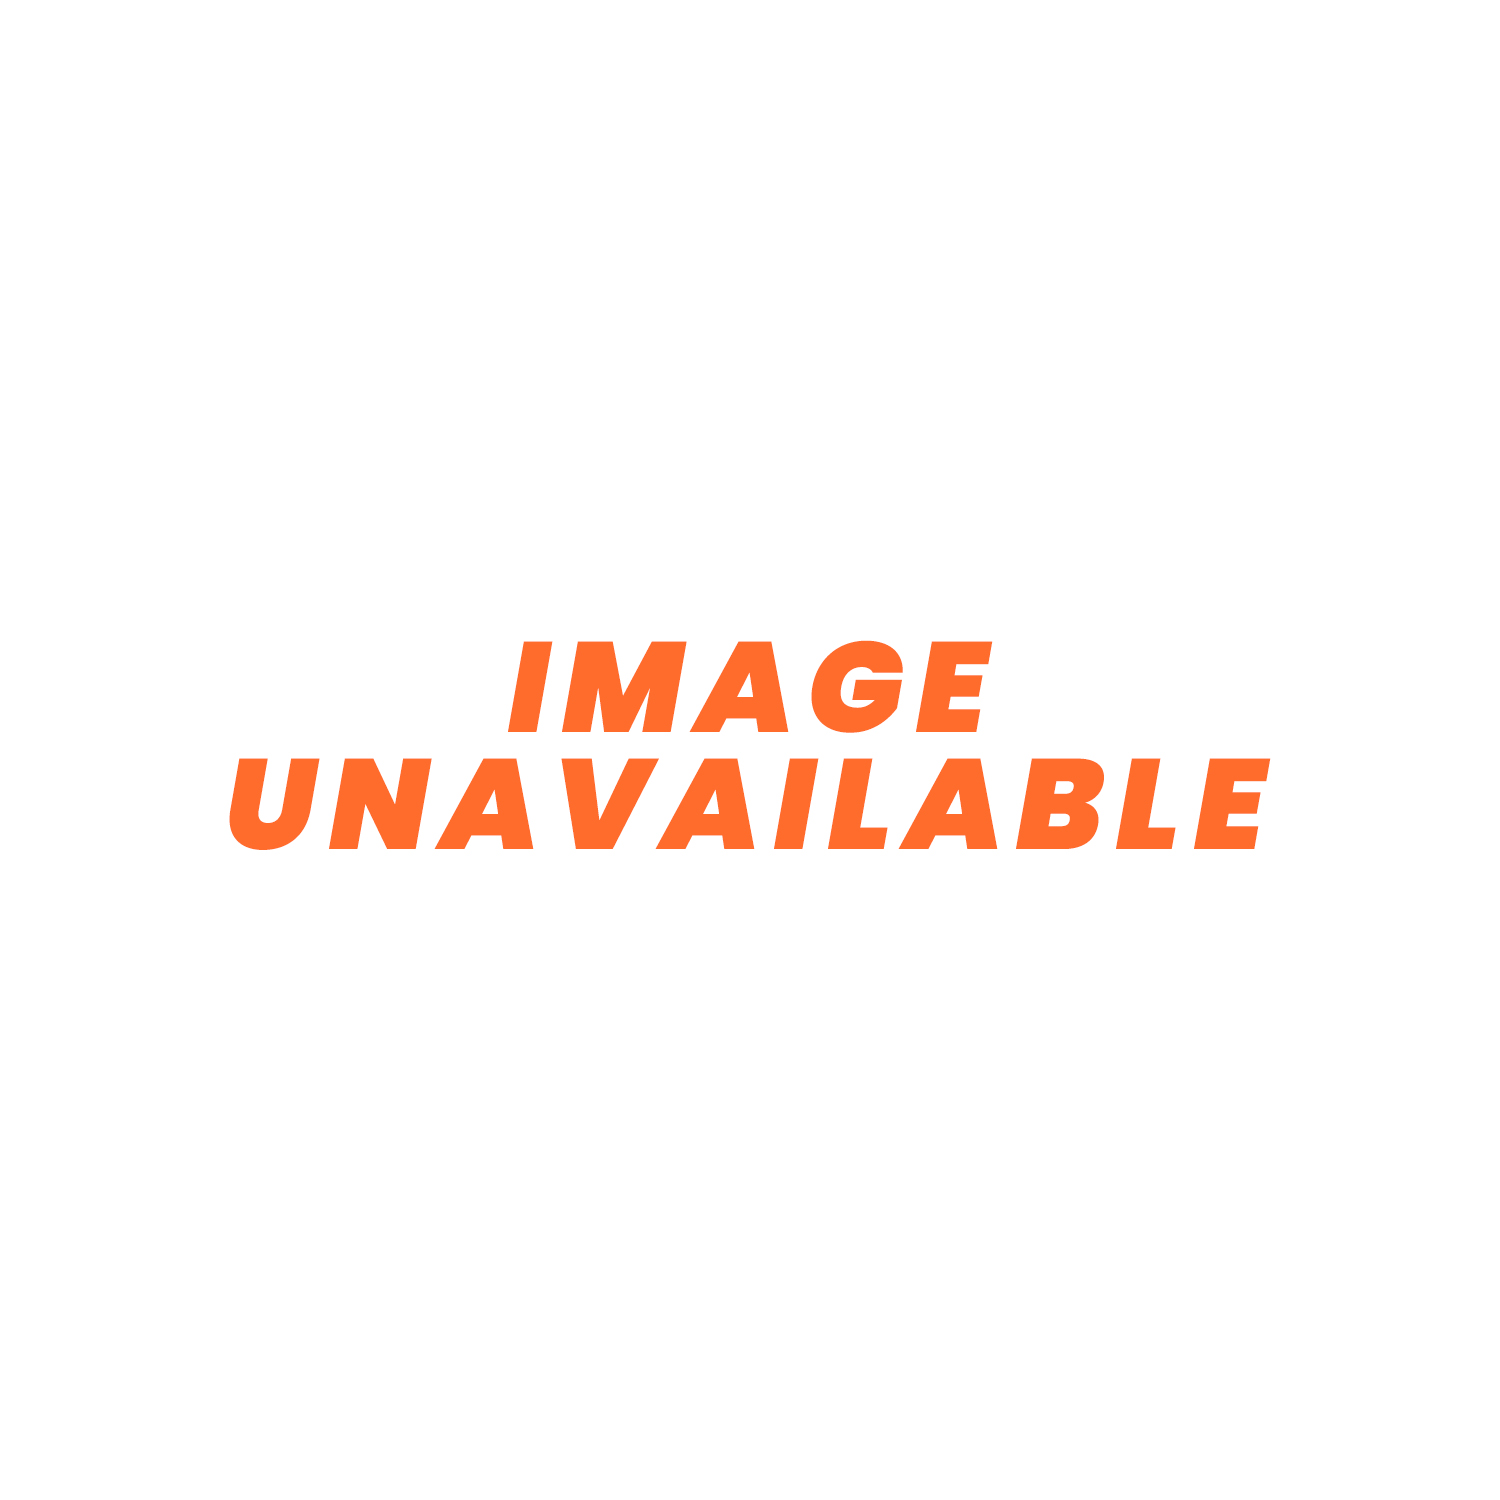 Standard Blade Fuse Box with LEDs - 10 Way